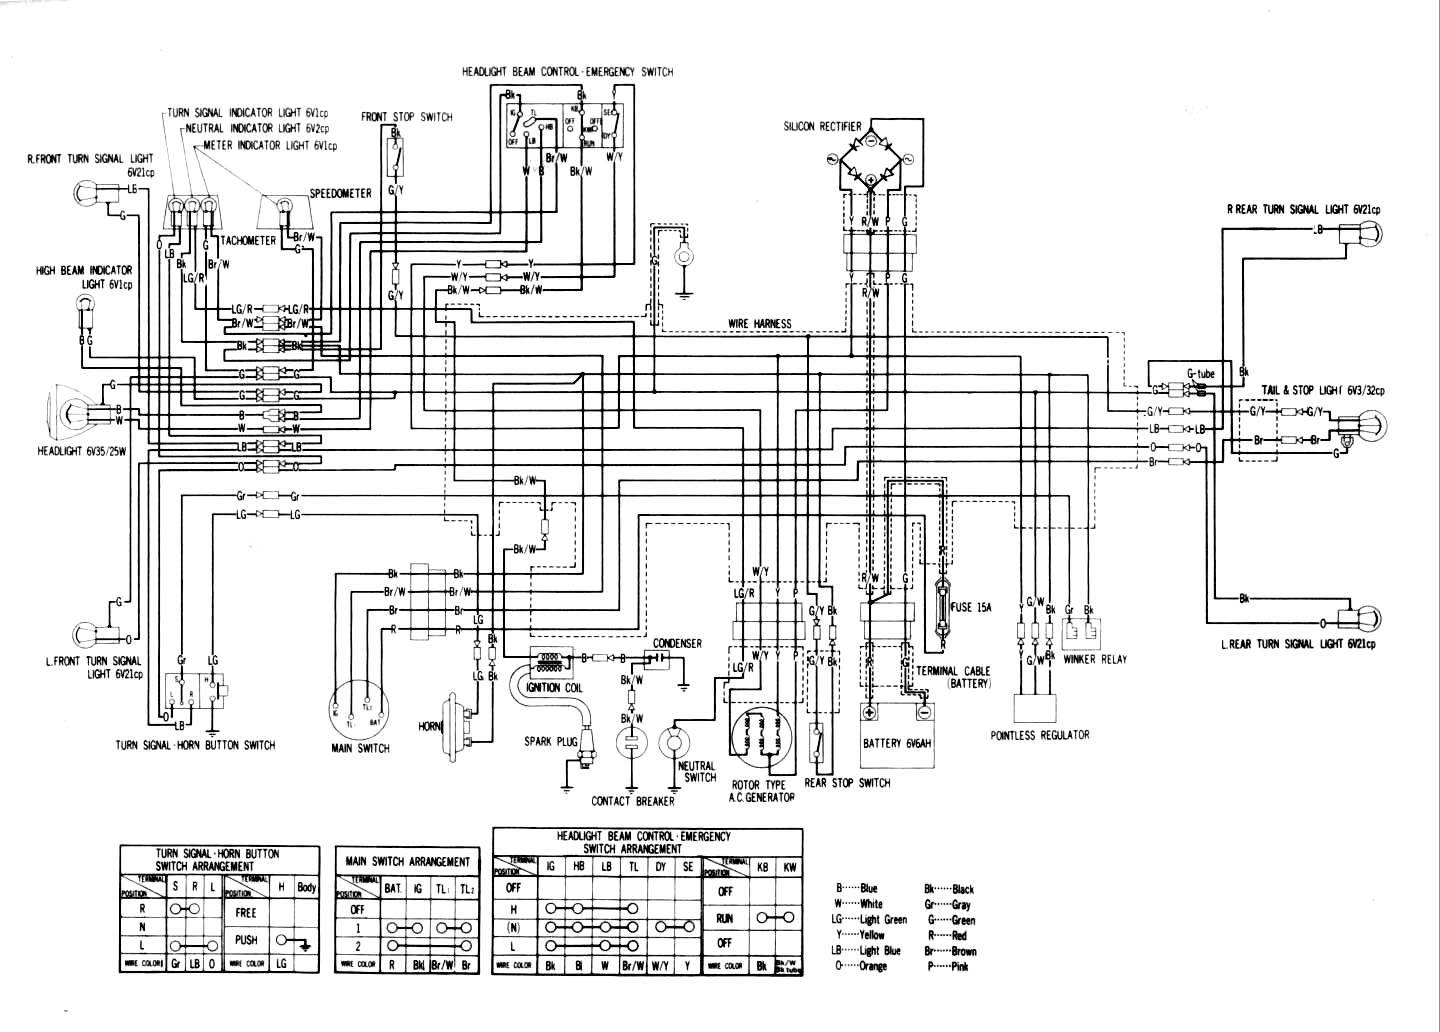 zl1000 wiring diagram easy to read wiring diagrams u2022 rh mywiringdiagram today 1984 Kawasaki ZL 1000 Kawasaki ZL 1000